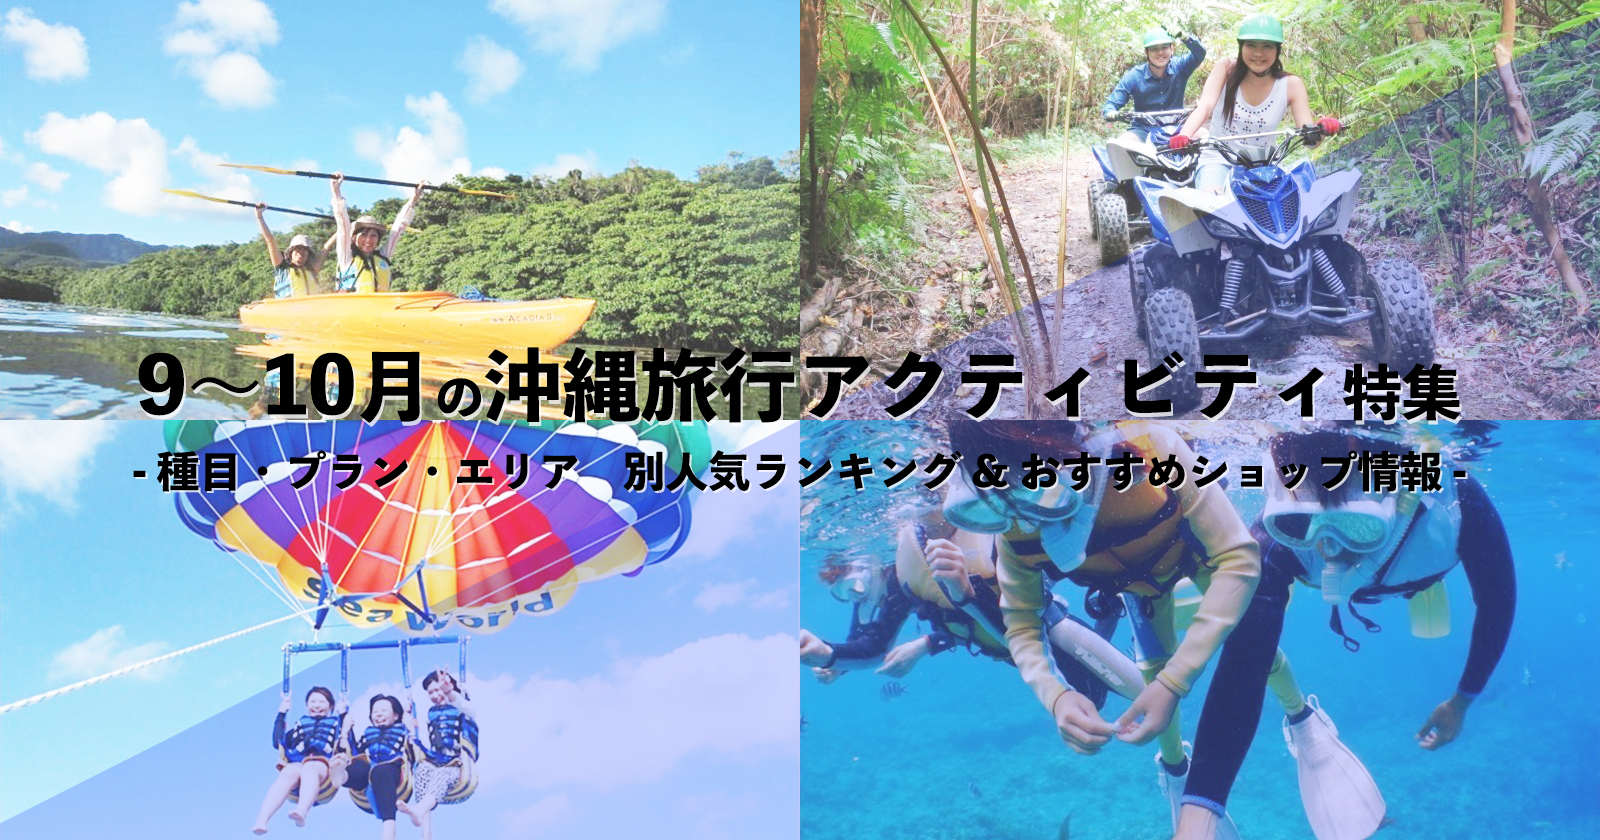 """"""" Okinawa recommended season"""" Cheap! 9 Mon - Oct. of Okinawa play a! Leisure · Activity · Experience Plans Popularity Ranking & Recommended Shop Information"""